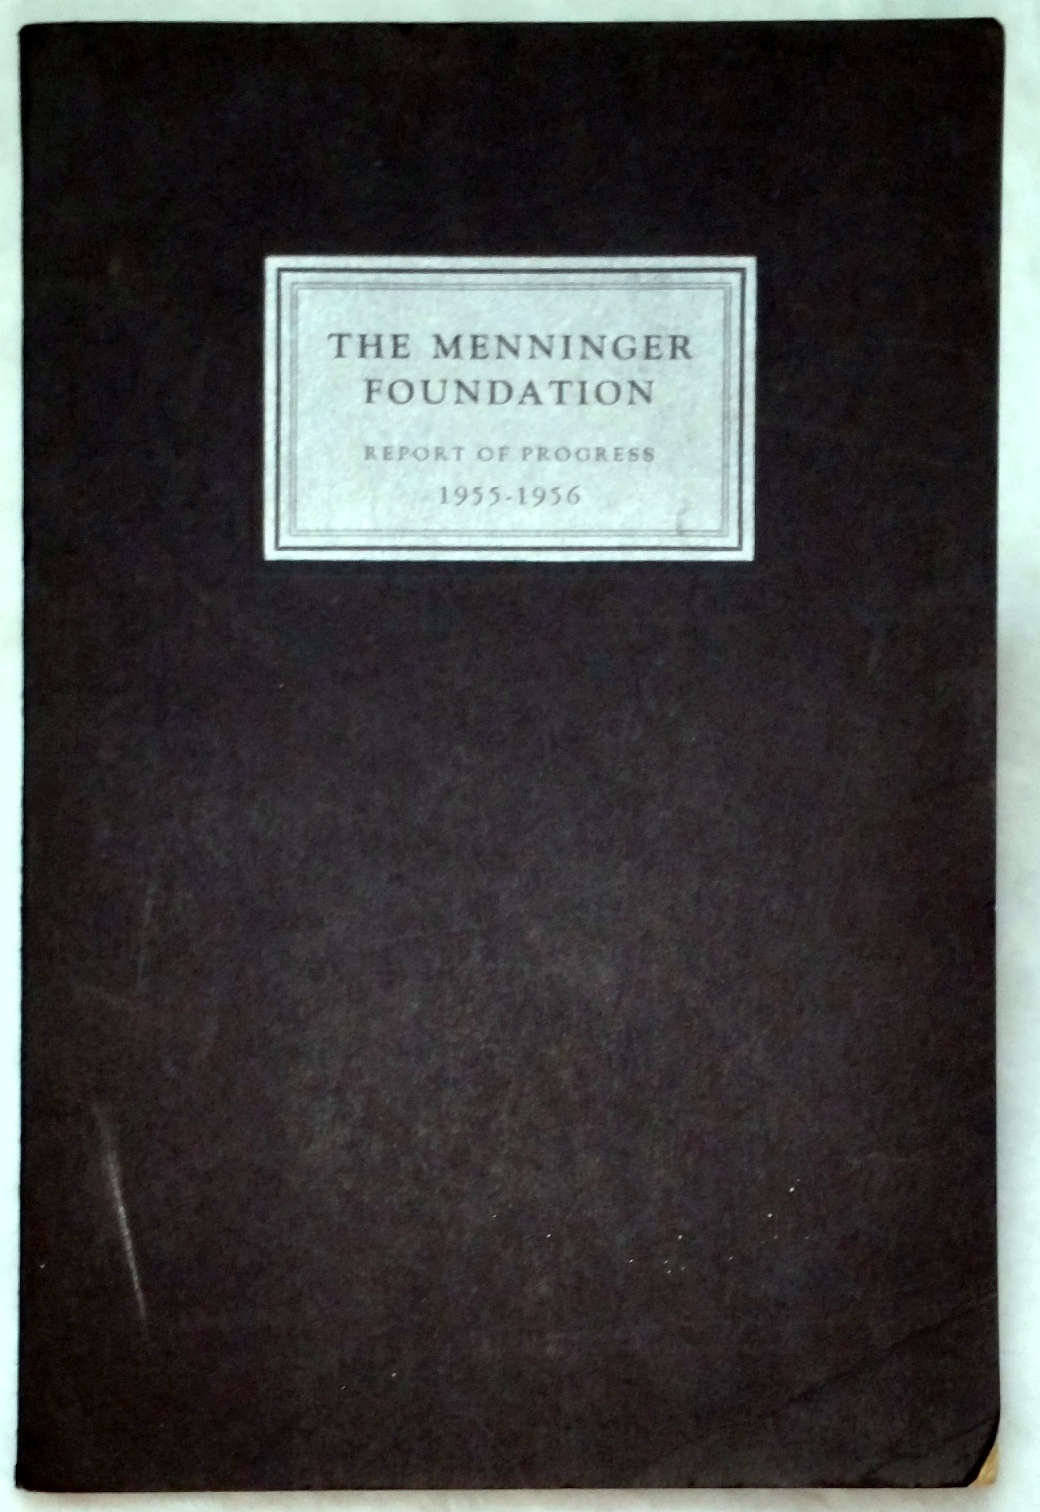 Image for The Menninger Foundation, Report of Progress for the Year from July 1, 1955 to June 30, 1956